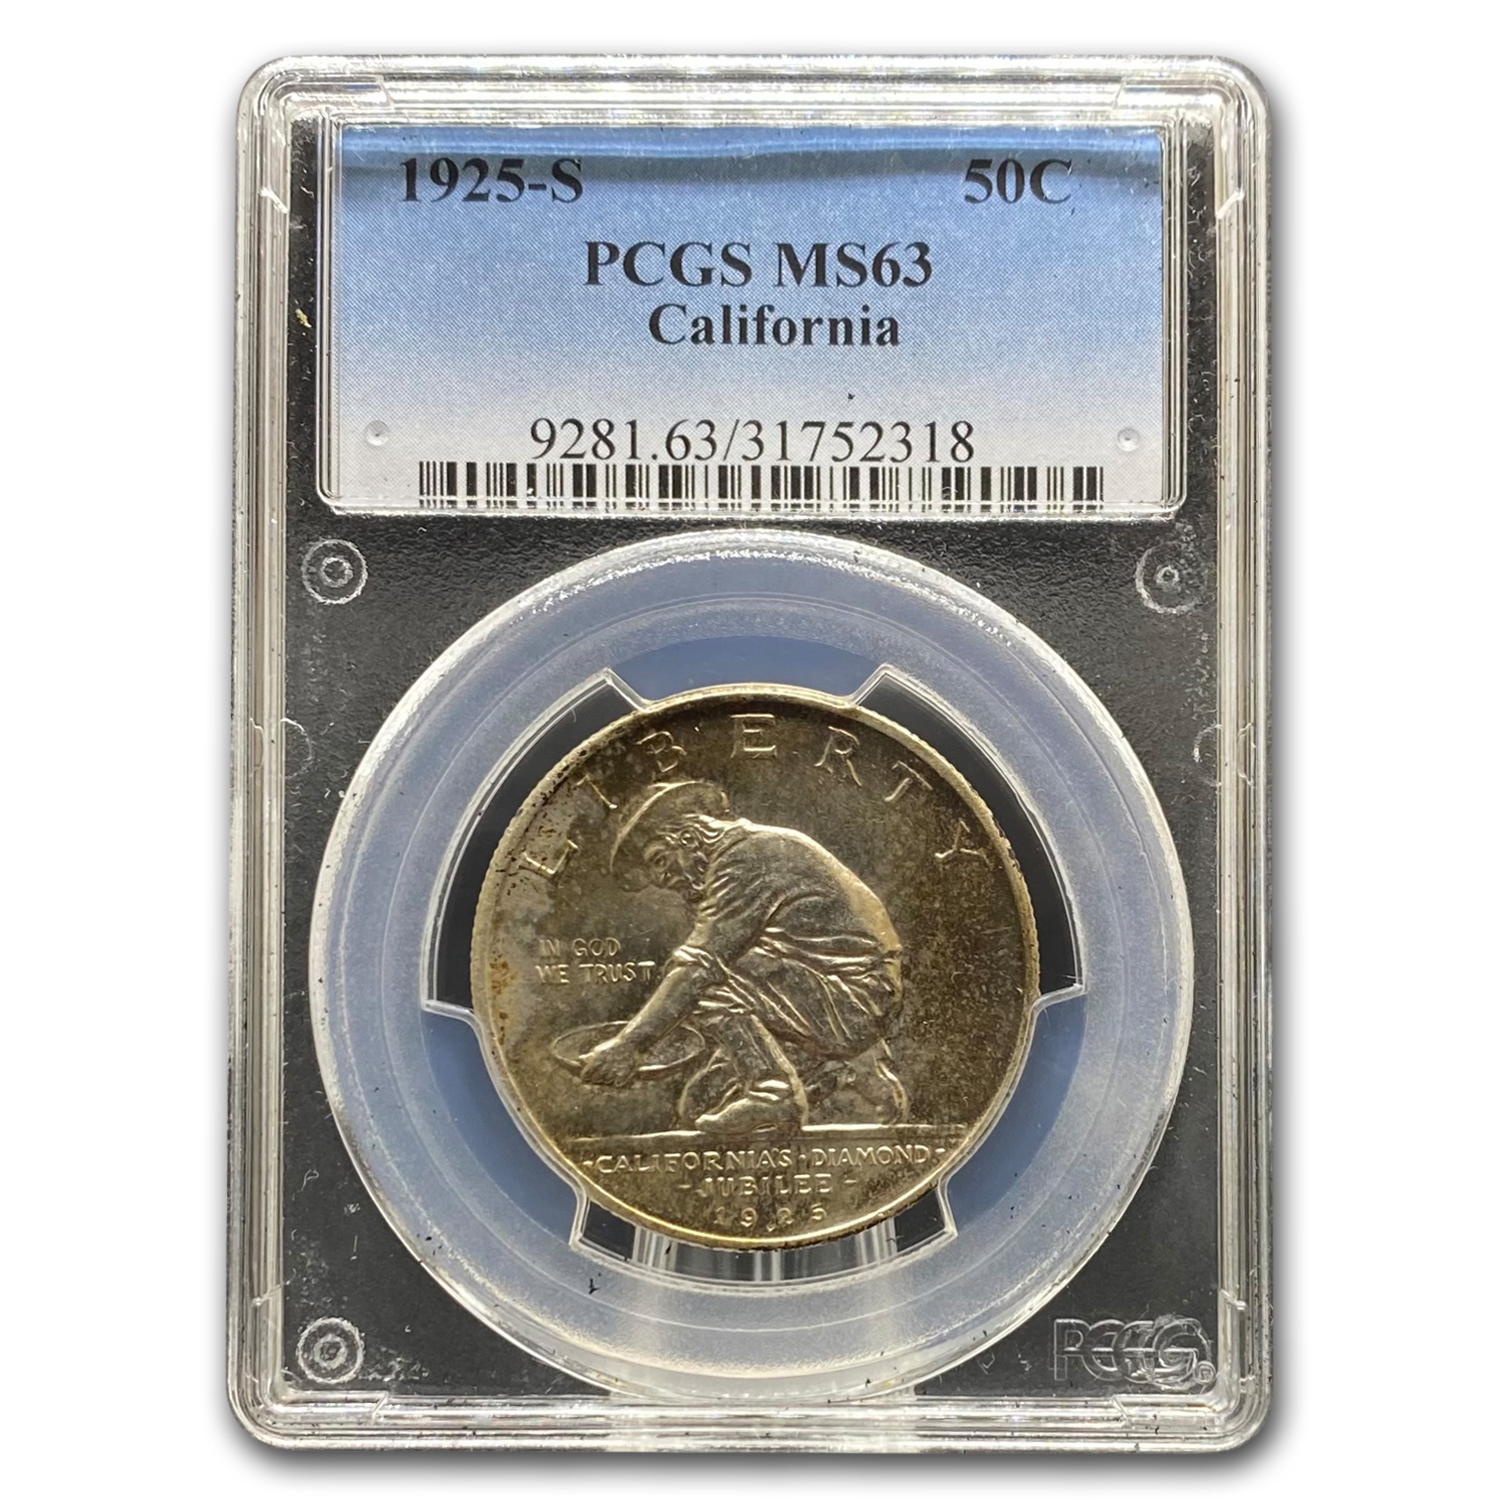 1925-S California Diamond Jubilee MS-63 PCGS